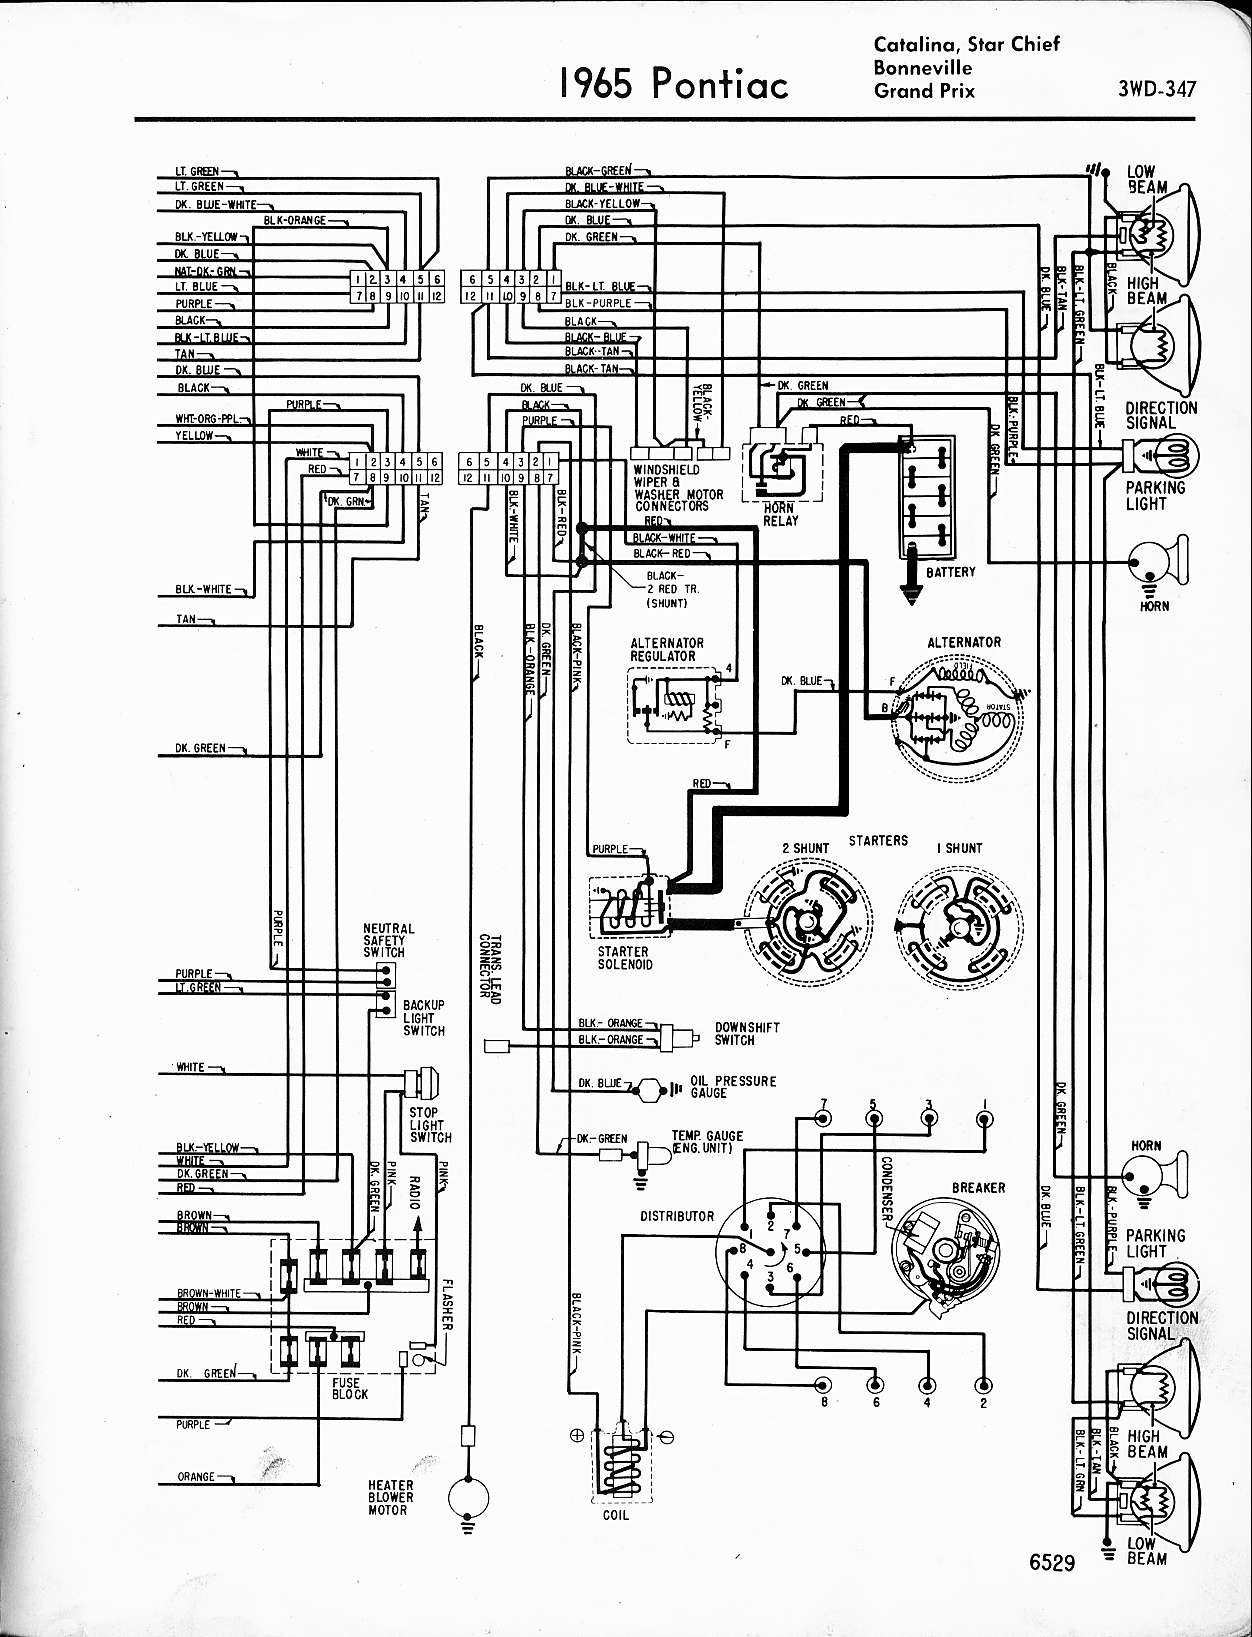 MWire5765 347 wallace racing wiring diagrams 2000 Pontiac Bonneville SLE at fashall.co